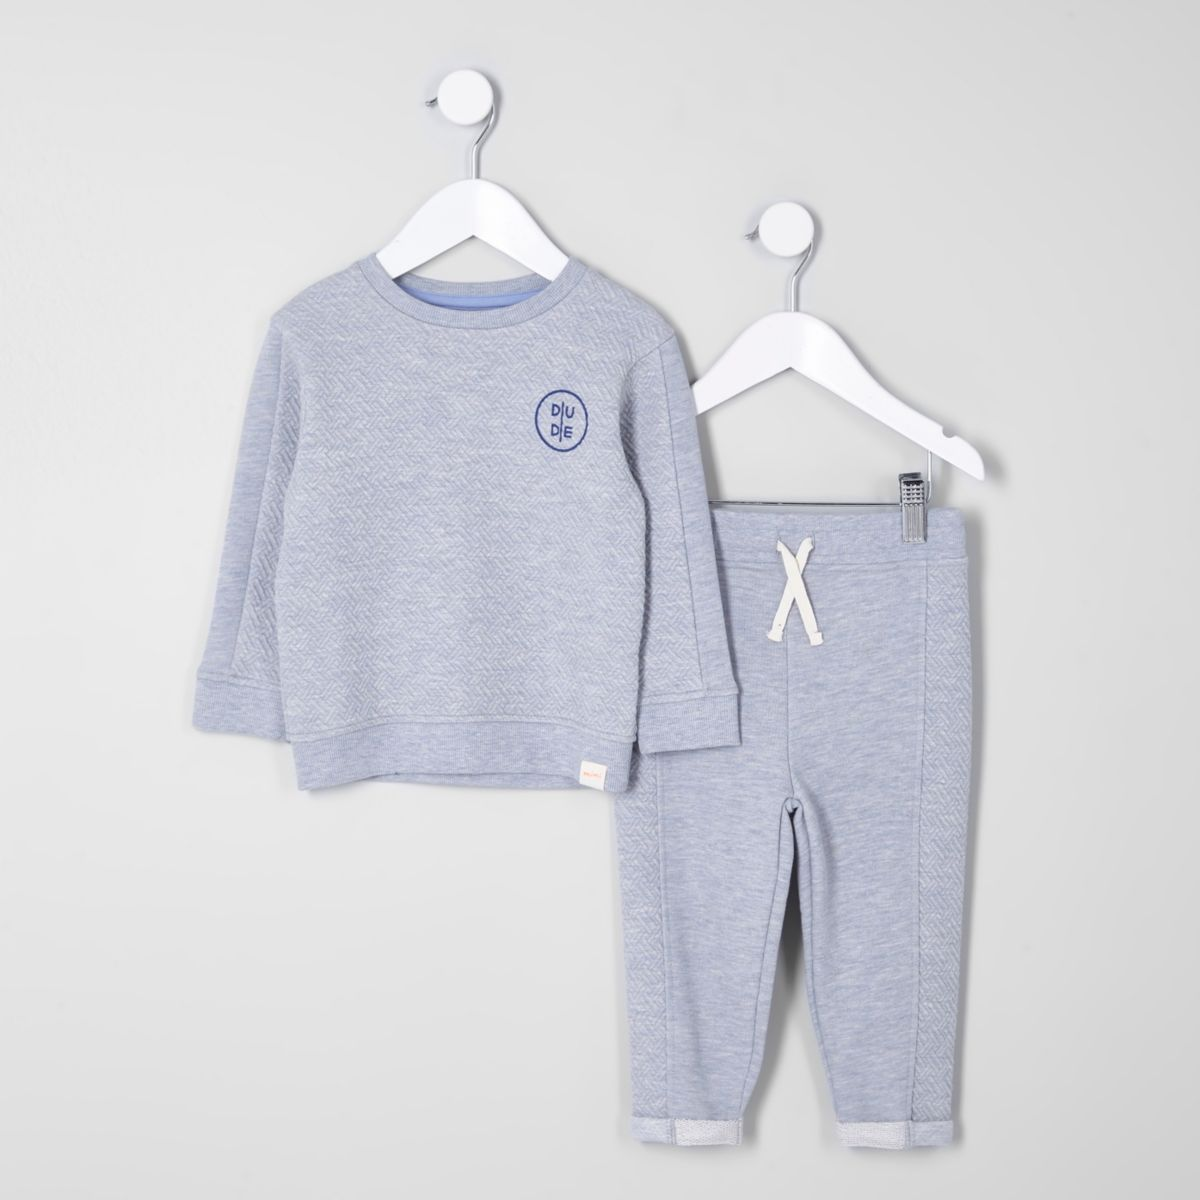 Mini boys grey quilted sweatshirt outfit